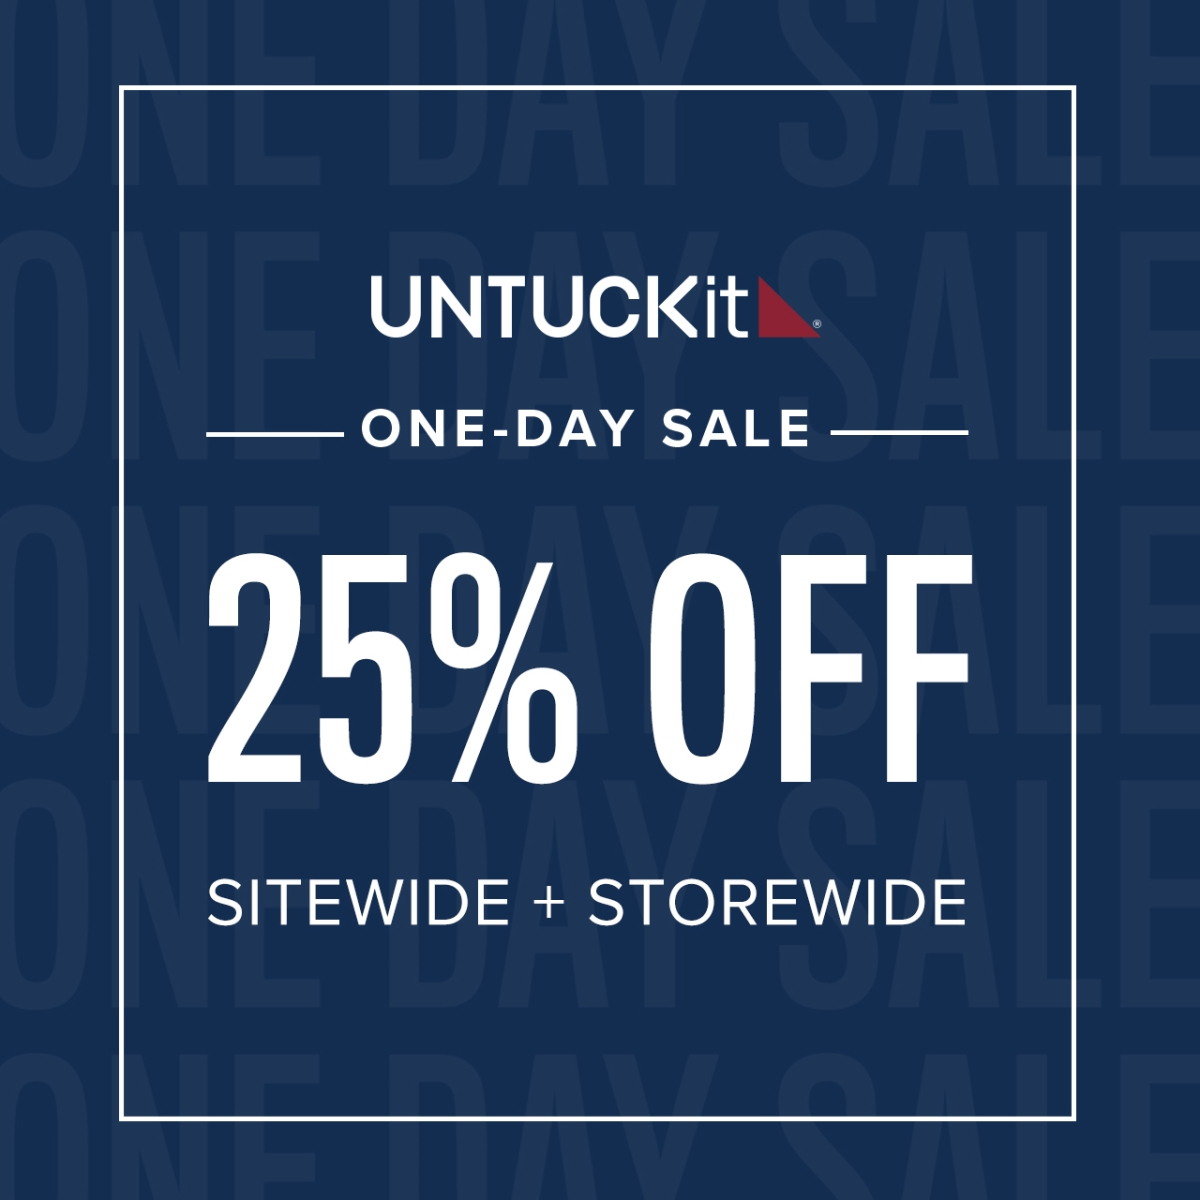 One-Day Sale 25% Off—Today Only! from UNTUCKit